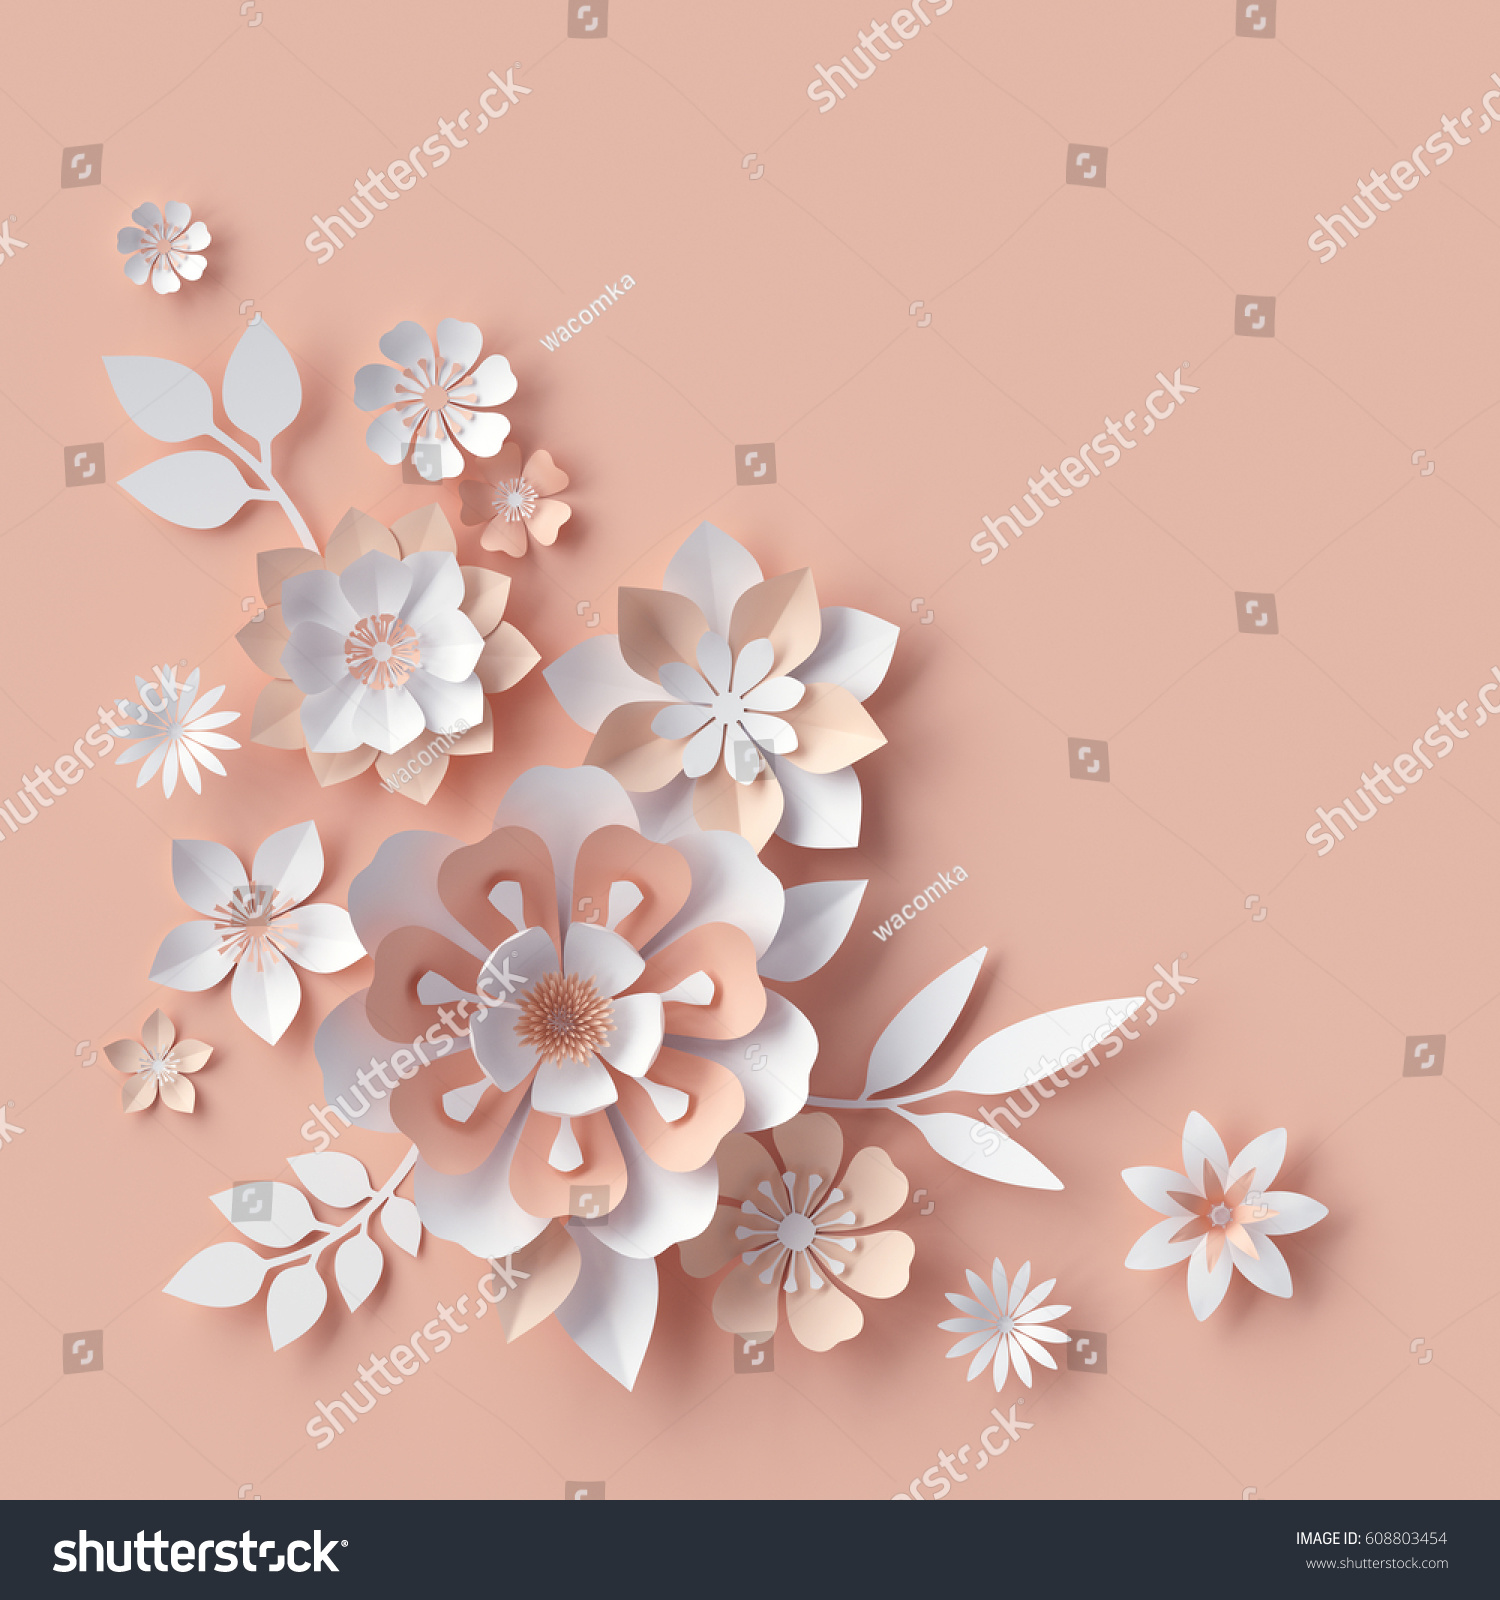 3 D Render Abstract Paper Flowers Decorative Stock Illustration